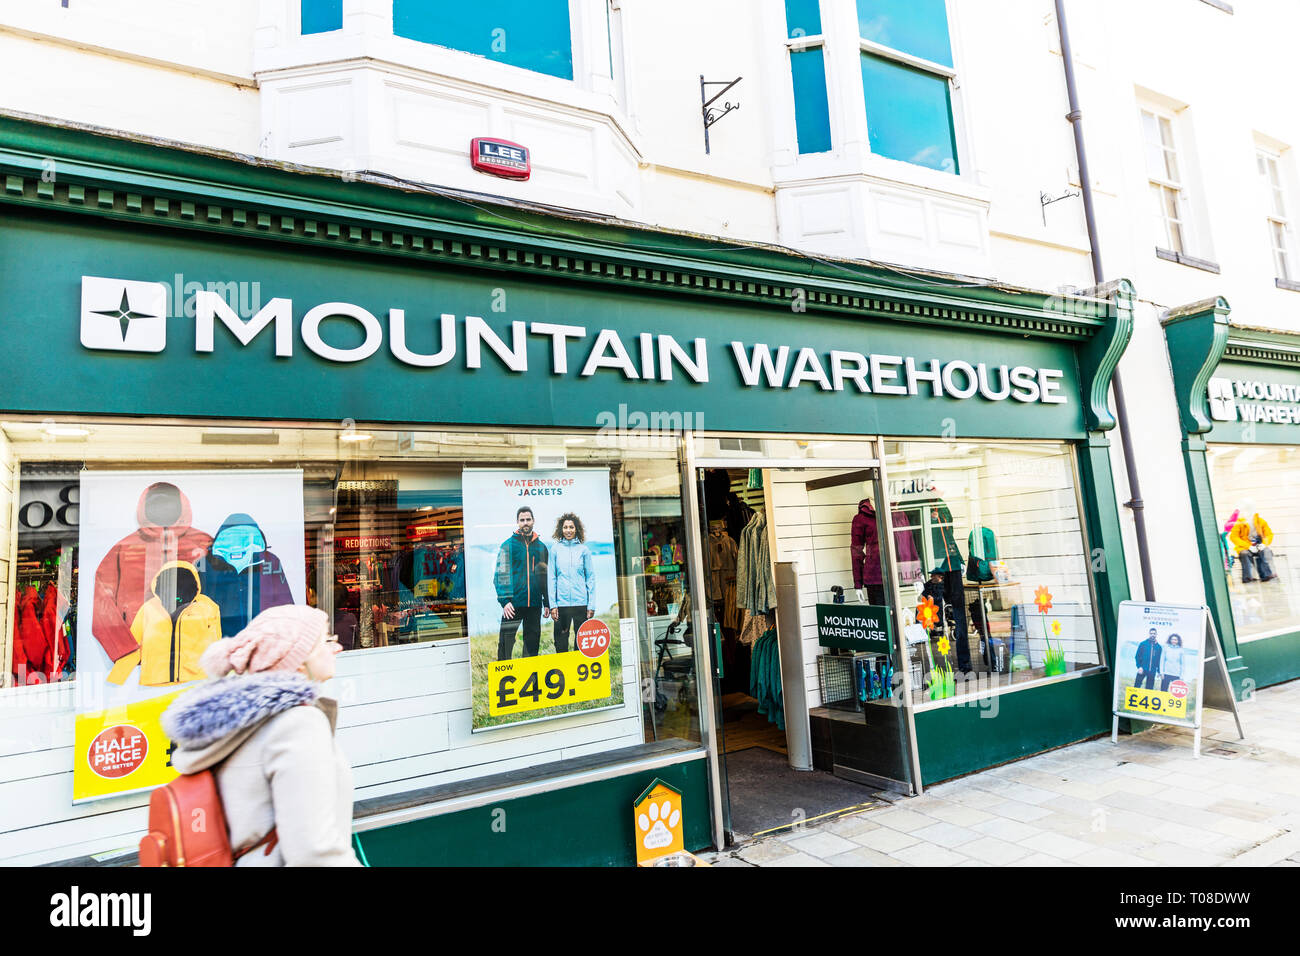 Mountain Warehouse shop, Mountain Warehouse store, Mountain Warehouse clothing, Mountain Warehouse, clothing, outdoor clothing, store, shop, shops, UK - Stock Image